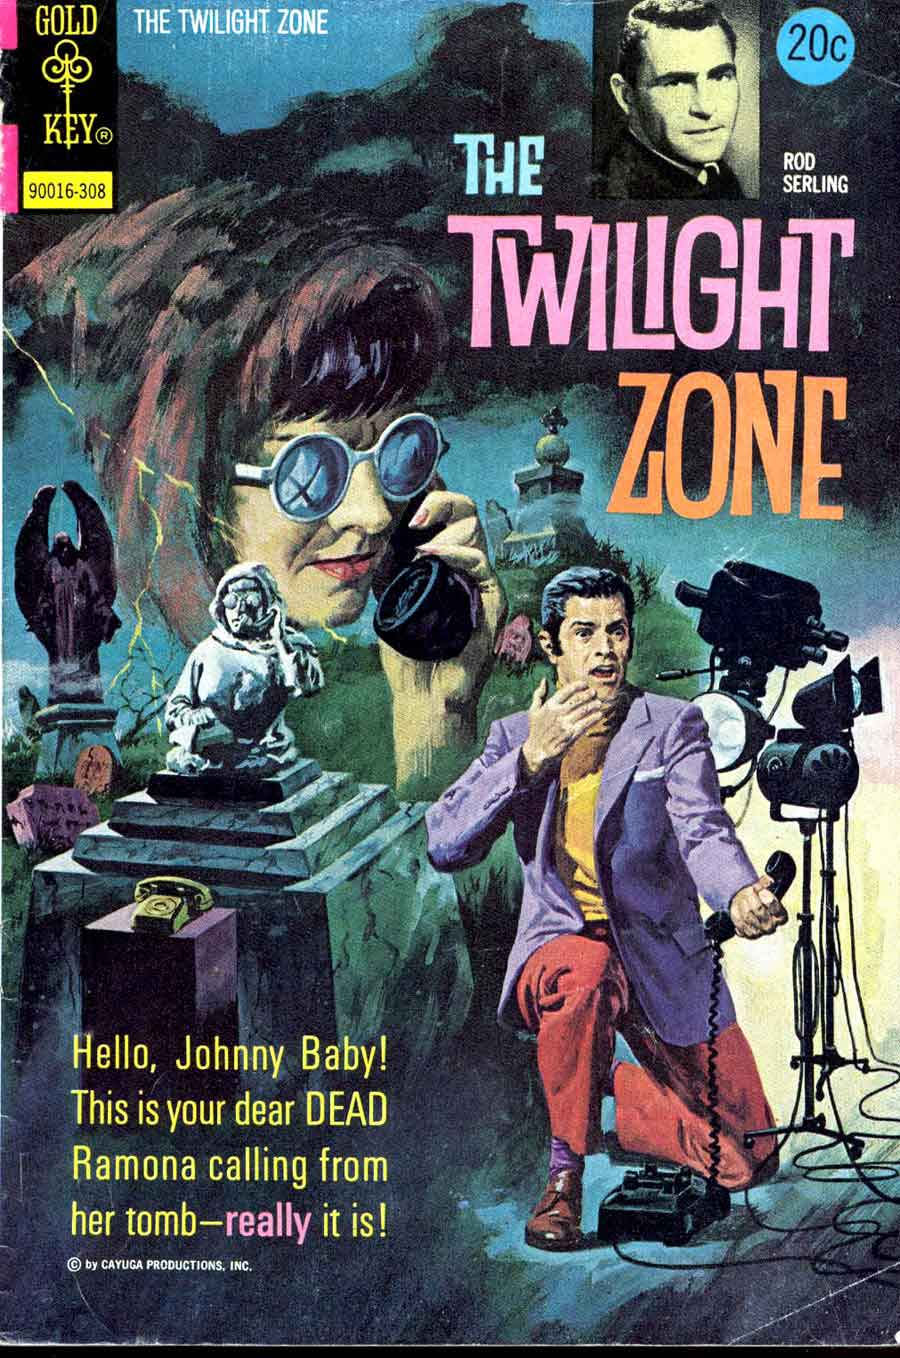 Book Cover Series Zone : Twilight zone al williamson art pencil ink